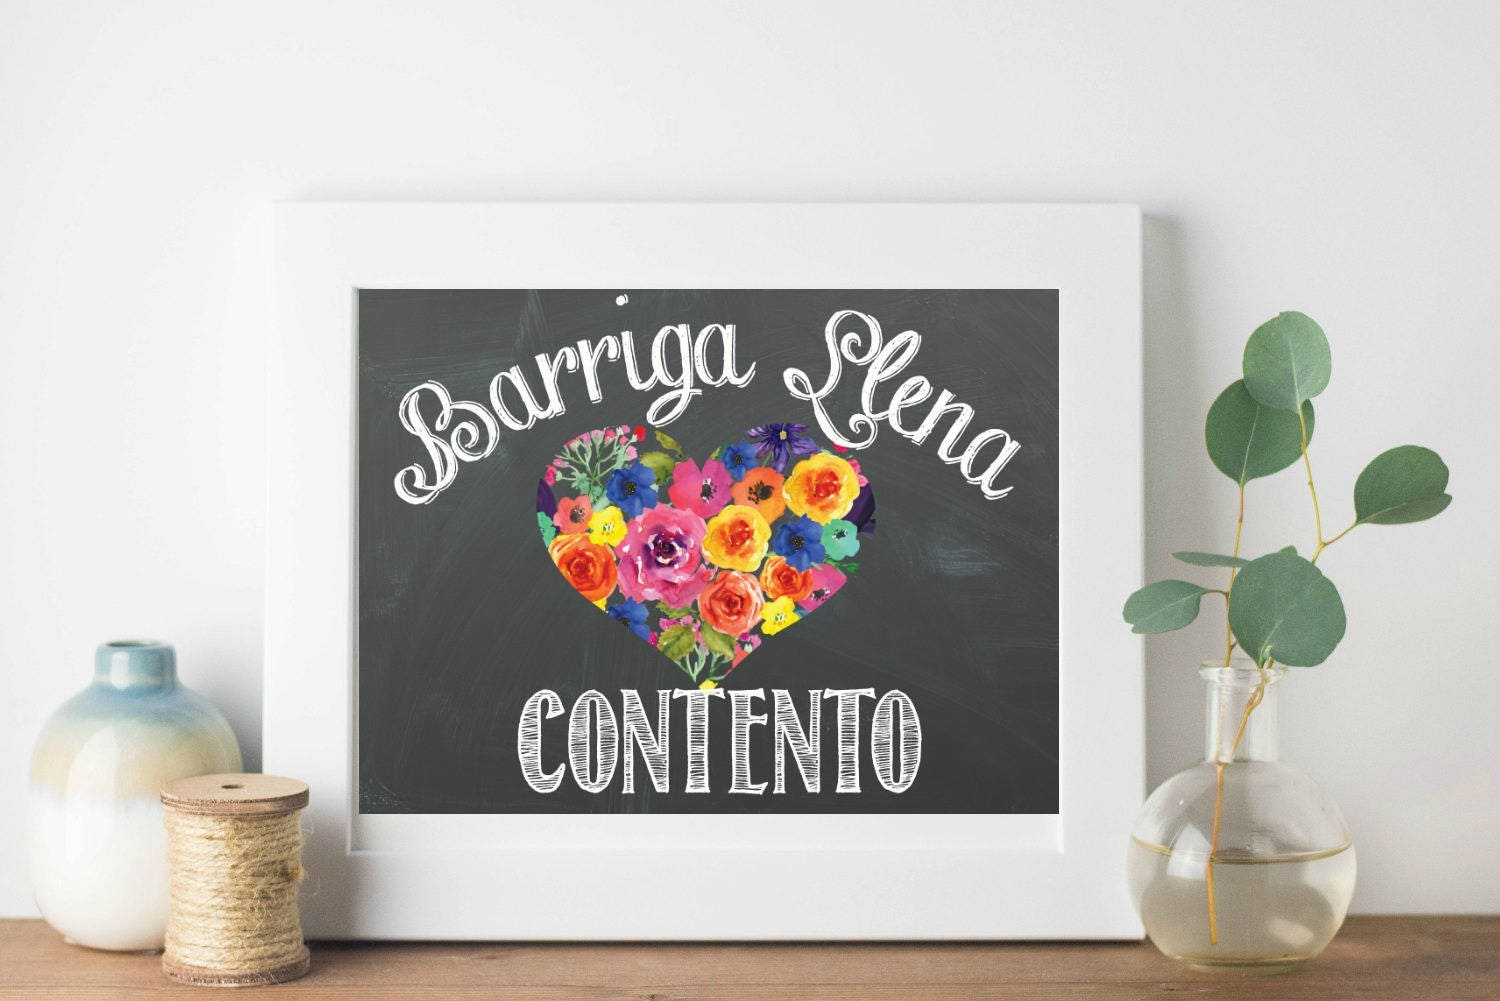 Barriga Llena Corazon Contento Printable Wall Art